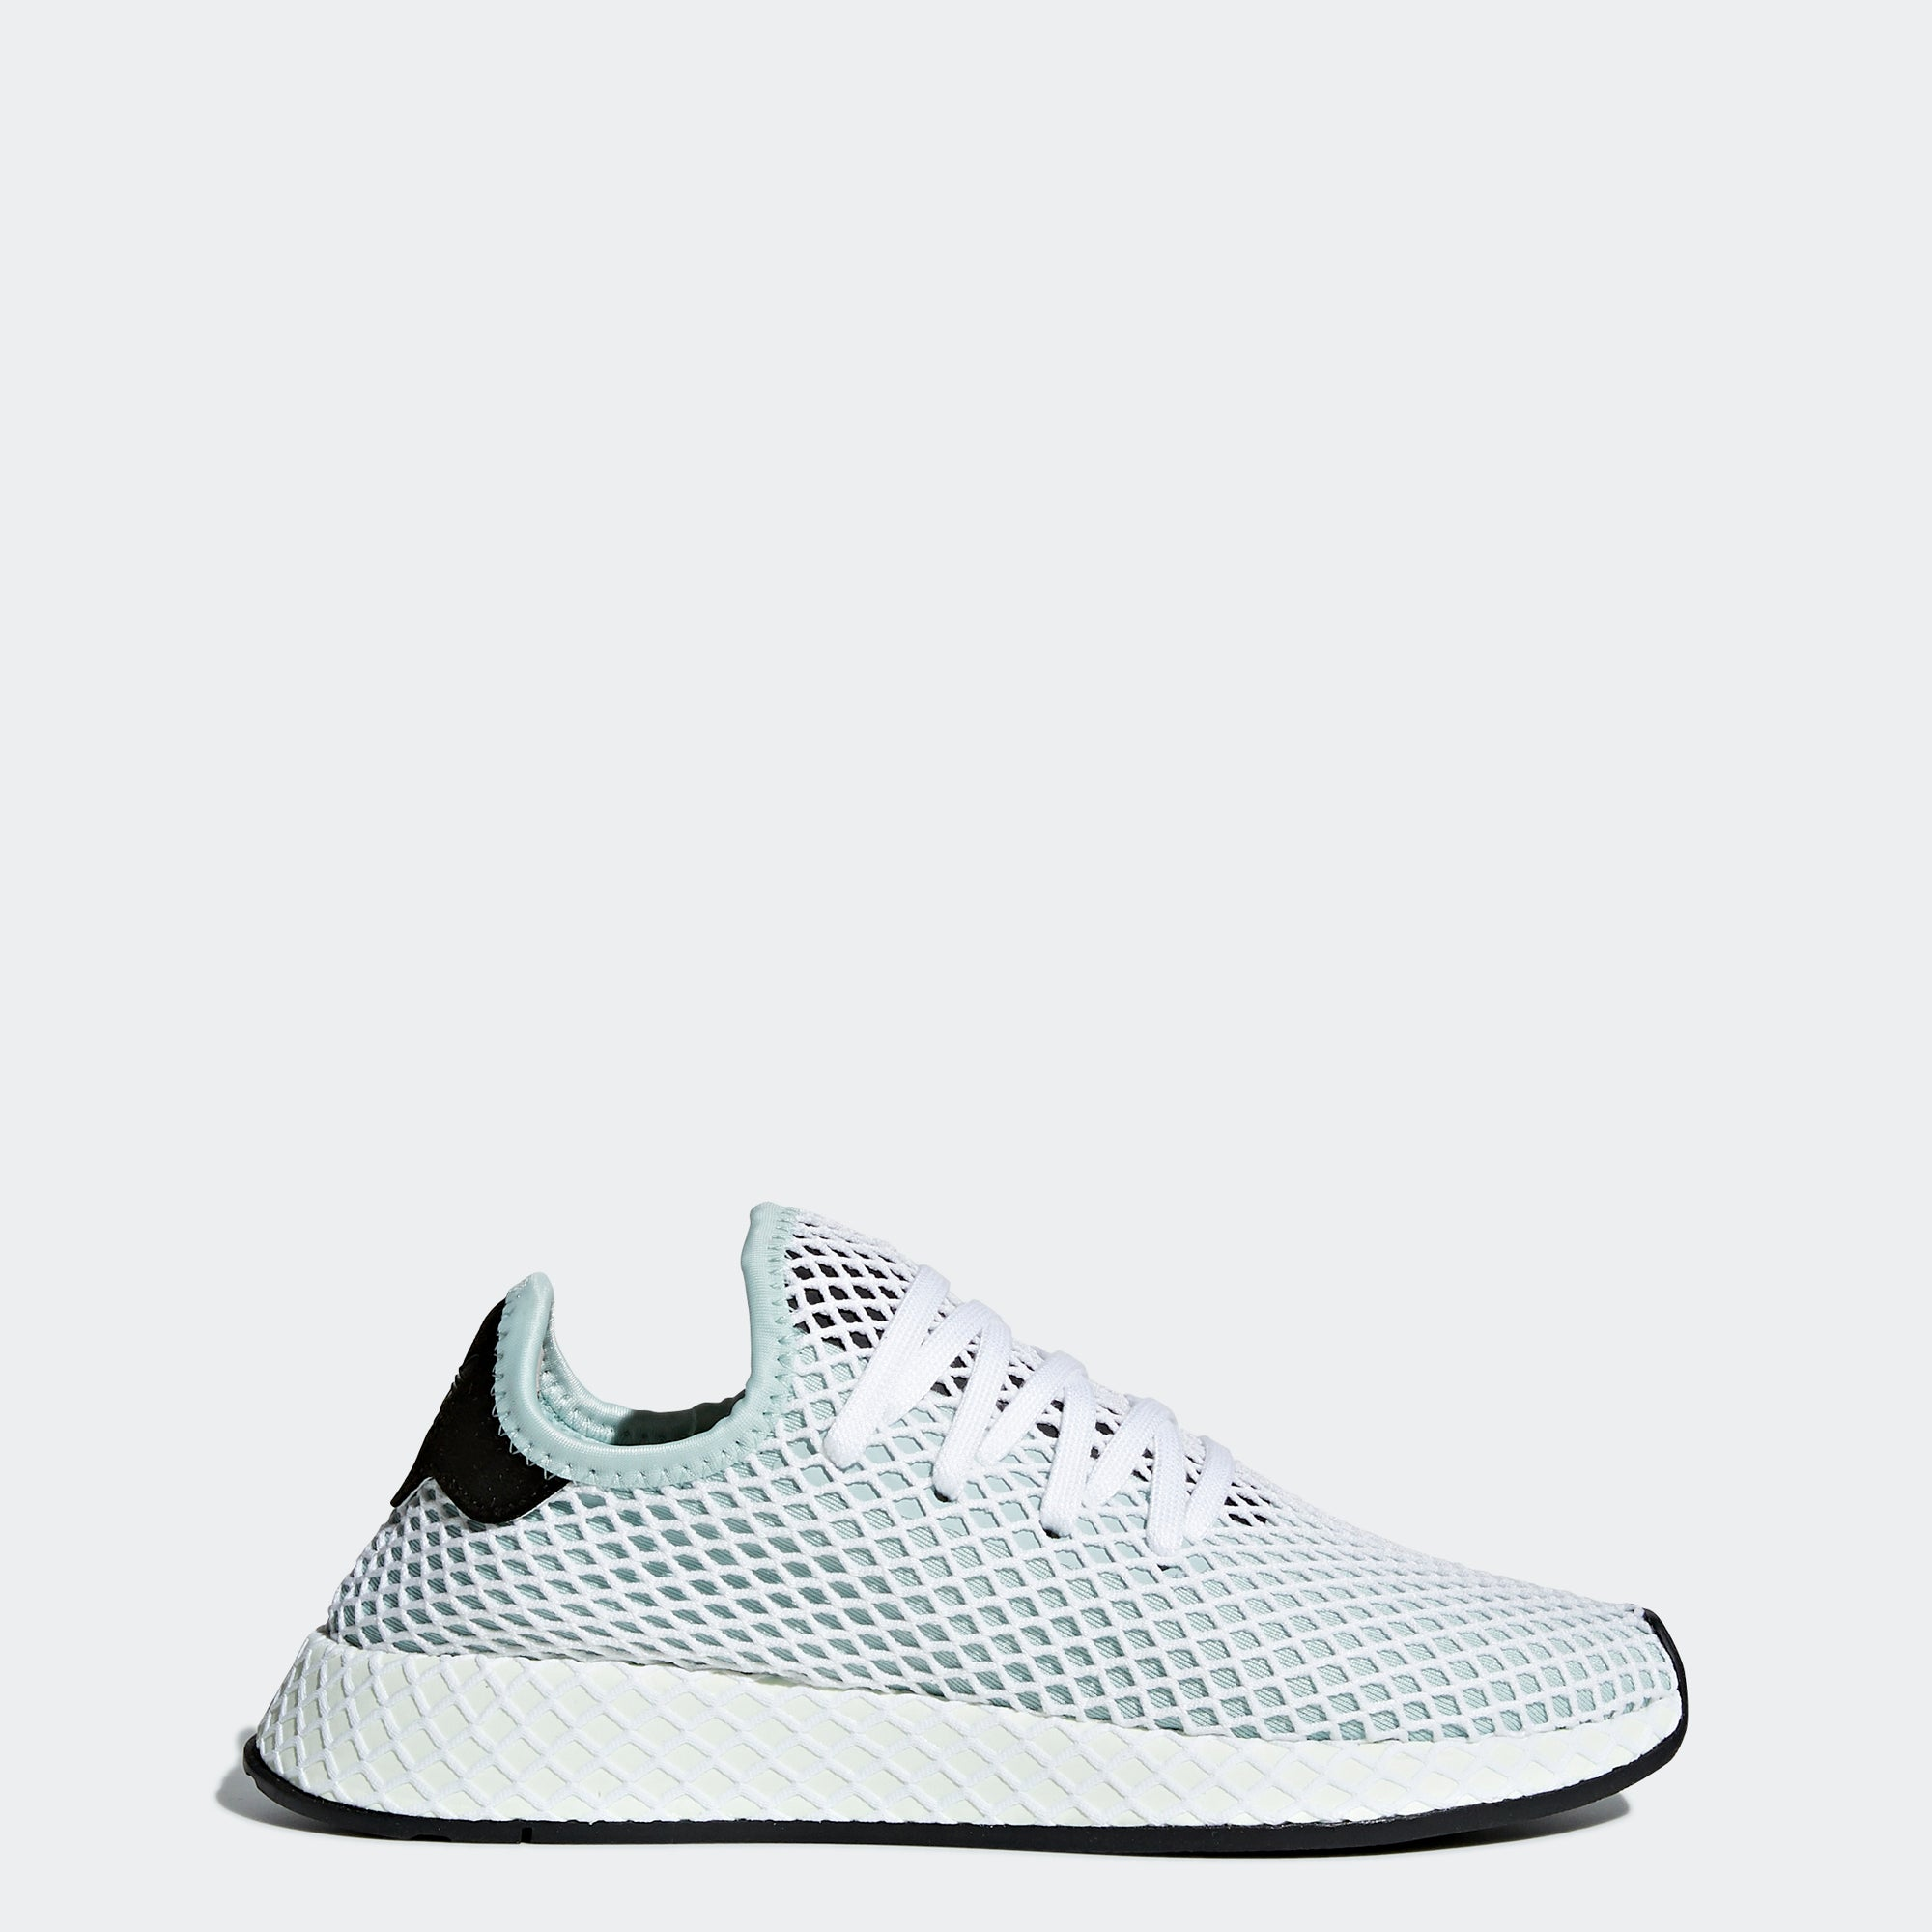 a5e513a82316 Women s adidas Originals Deerupt Runner Shoes Ash Green CQ2911 ...